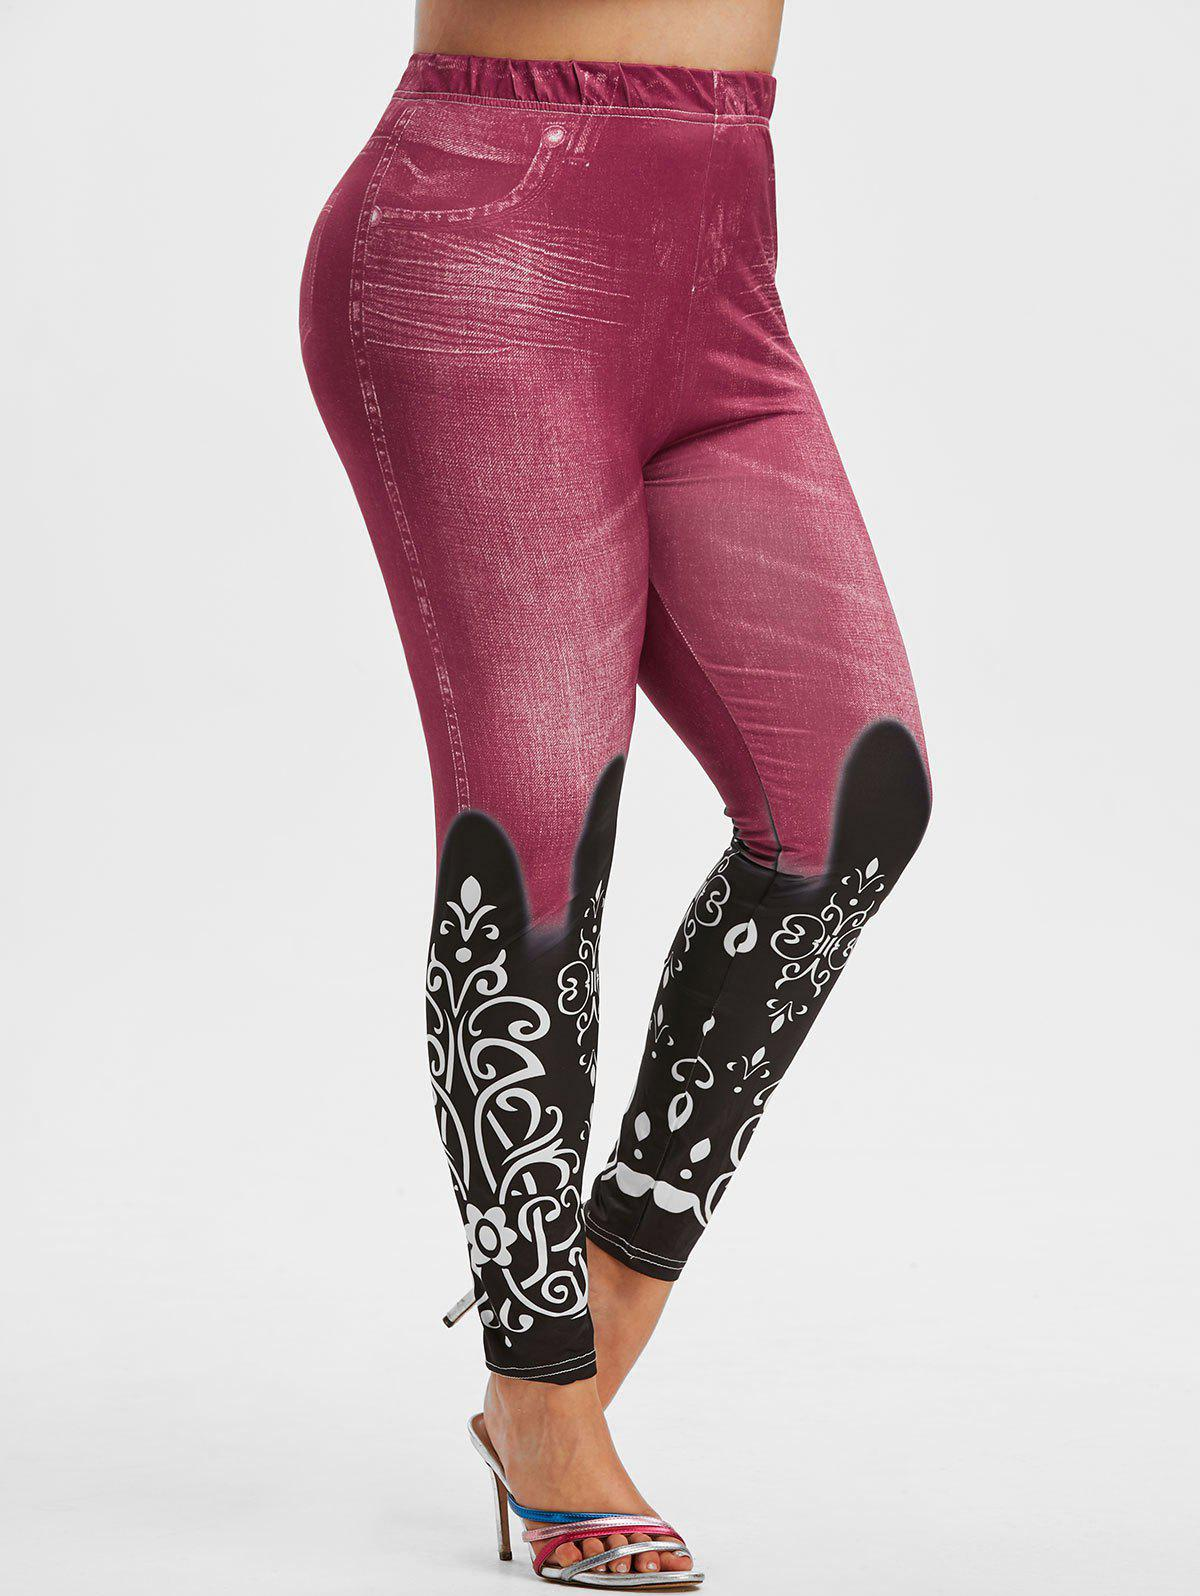 Plus Size Stretchy 3D Pattern High Rise Jeggings - LIGHT PINK 5X